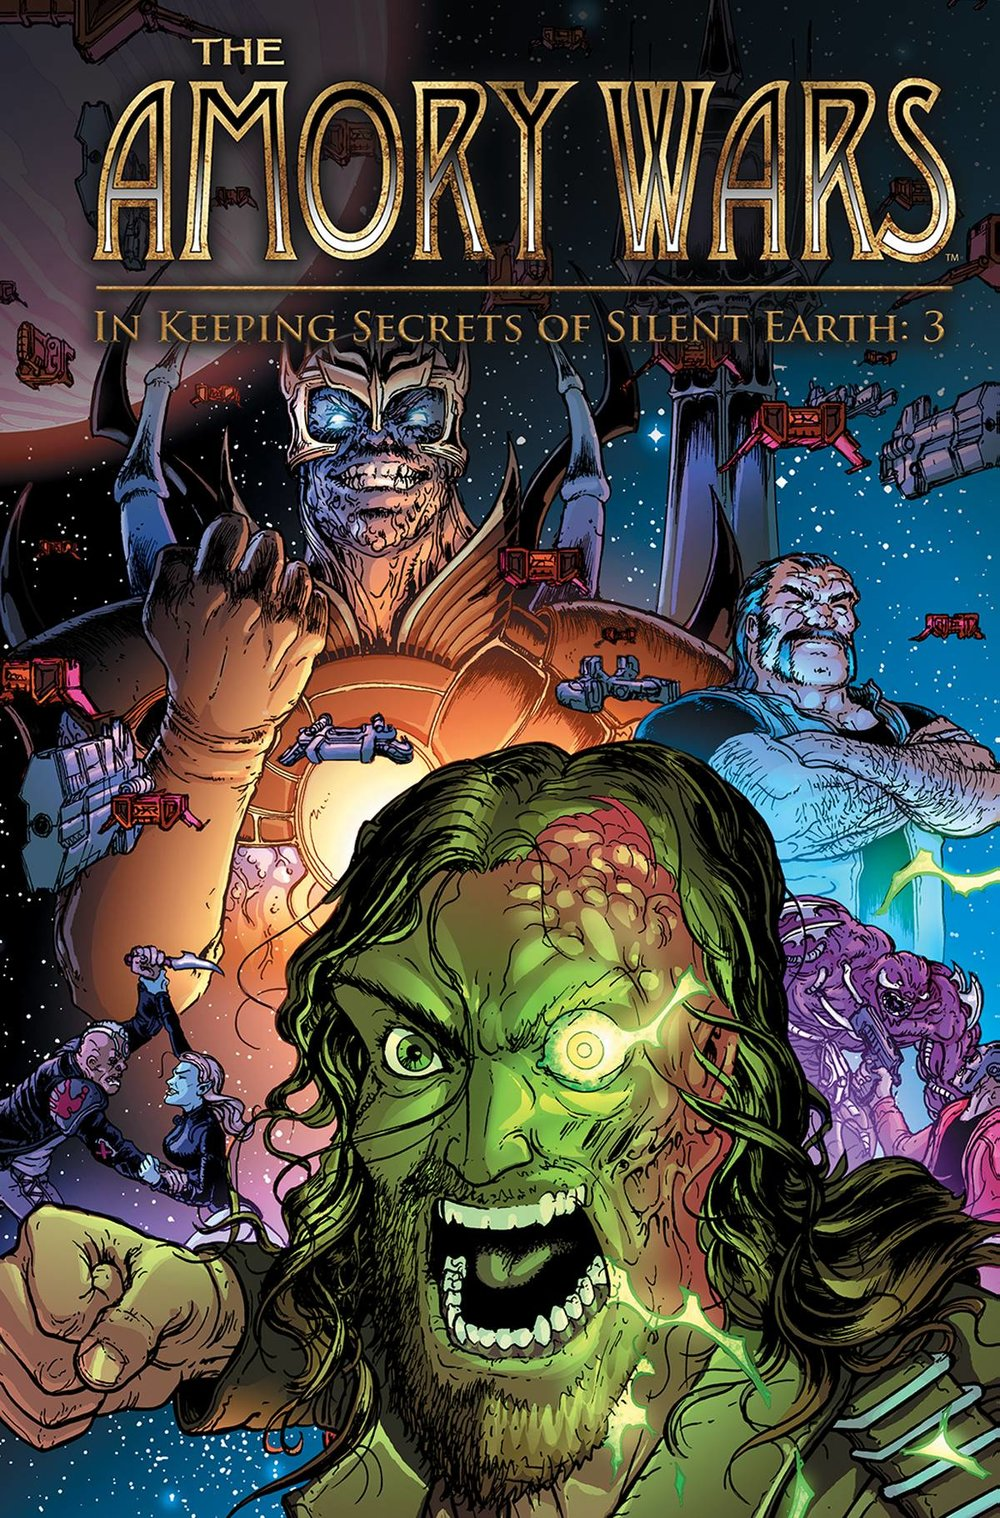 AMORY WARS HC KEEPING SECRETS OF SILENT EARTH 3.jpg